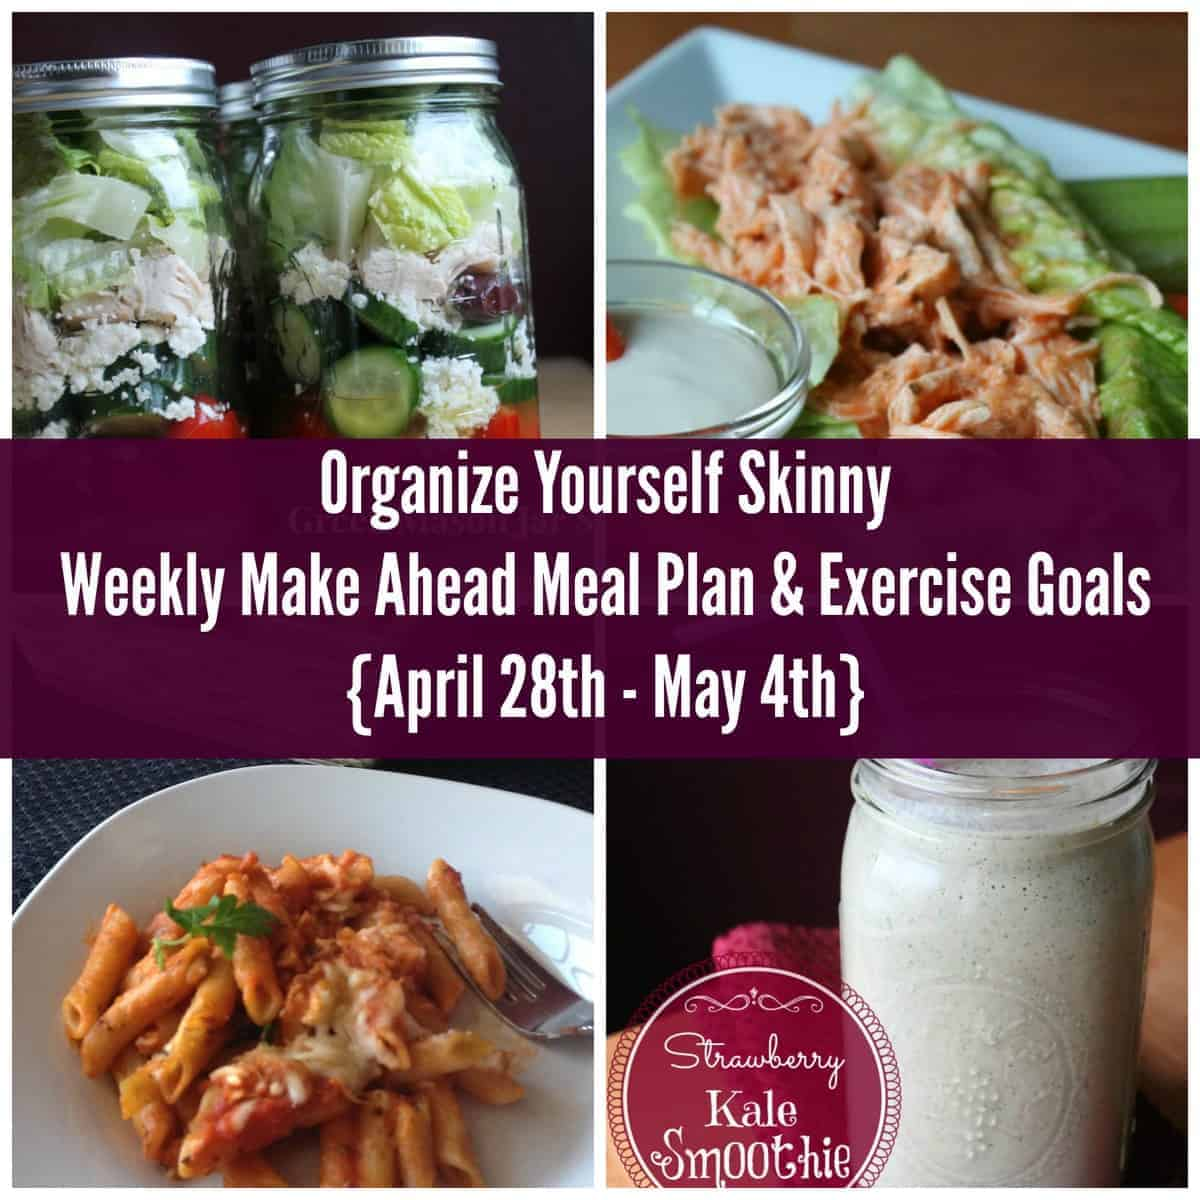 Organize Yourself Skinny Weekly Meal Plan and Exercise Goals for April 28th - May 4th. See what I am eating for the week and my exercise schedule.